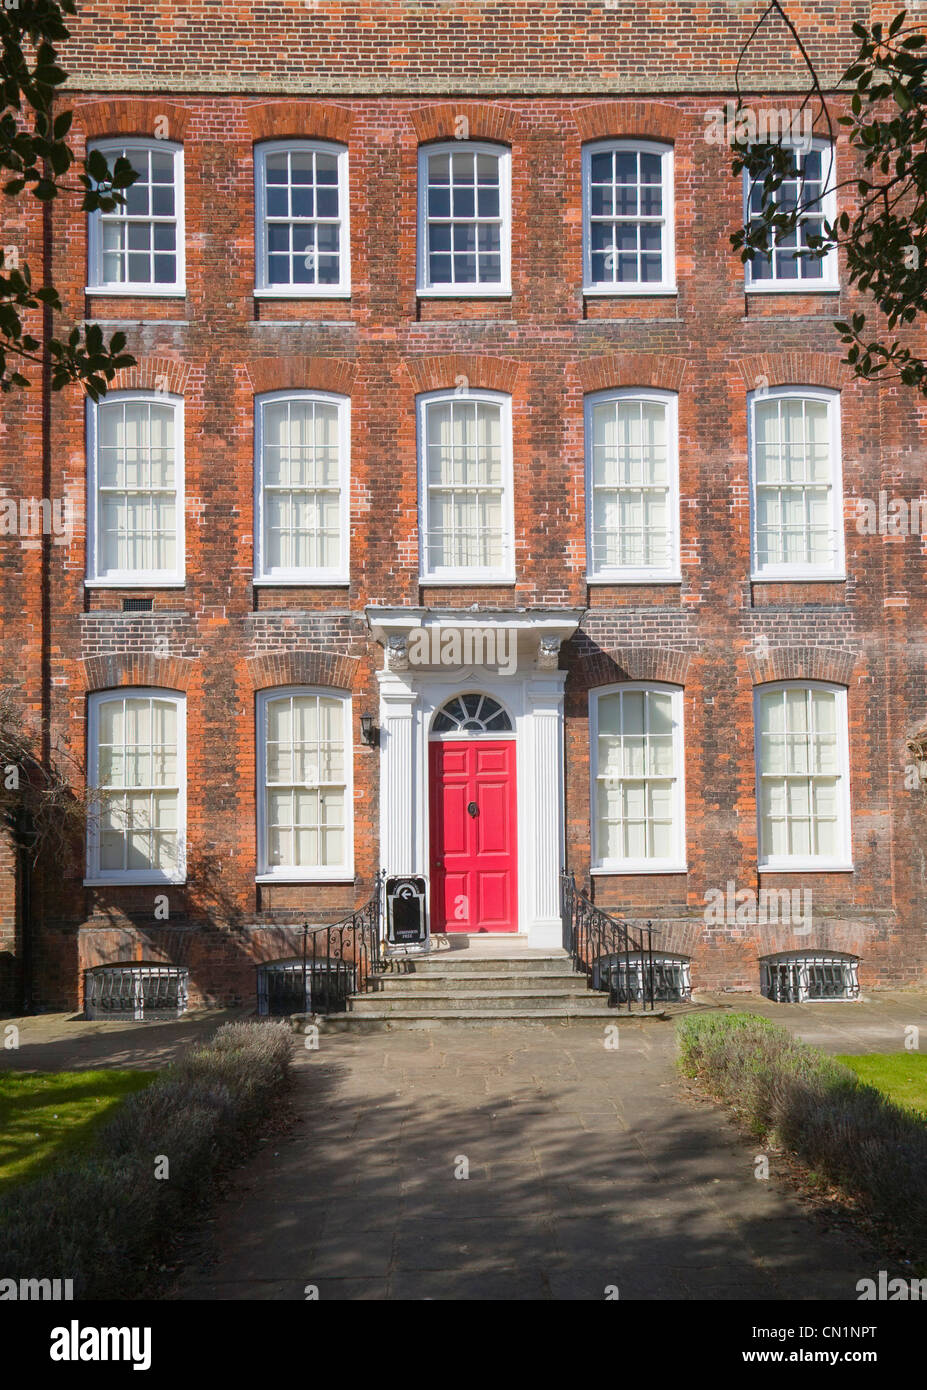 Georgian frontage of Hollytrees museum, Colchester, Essex, England - Stock Image